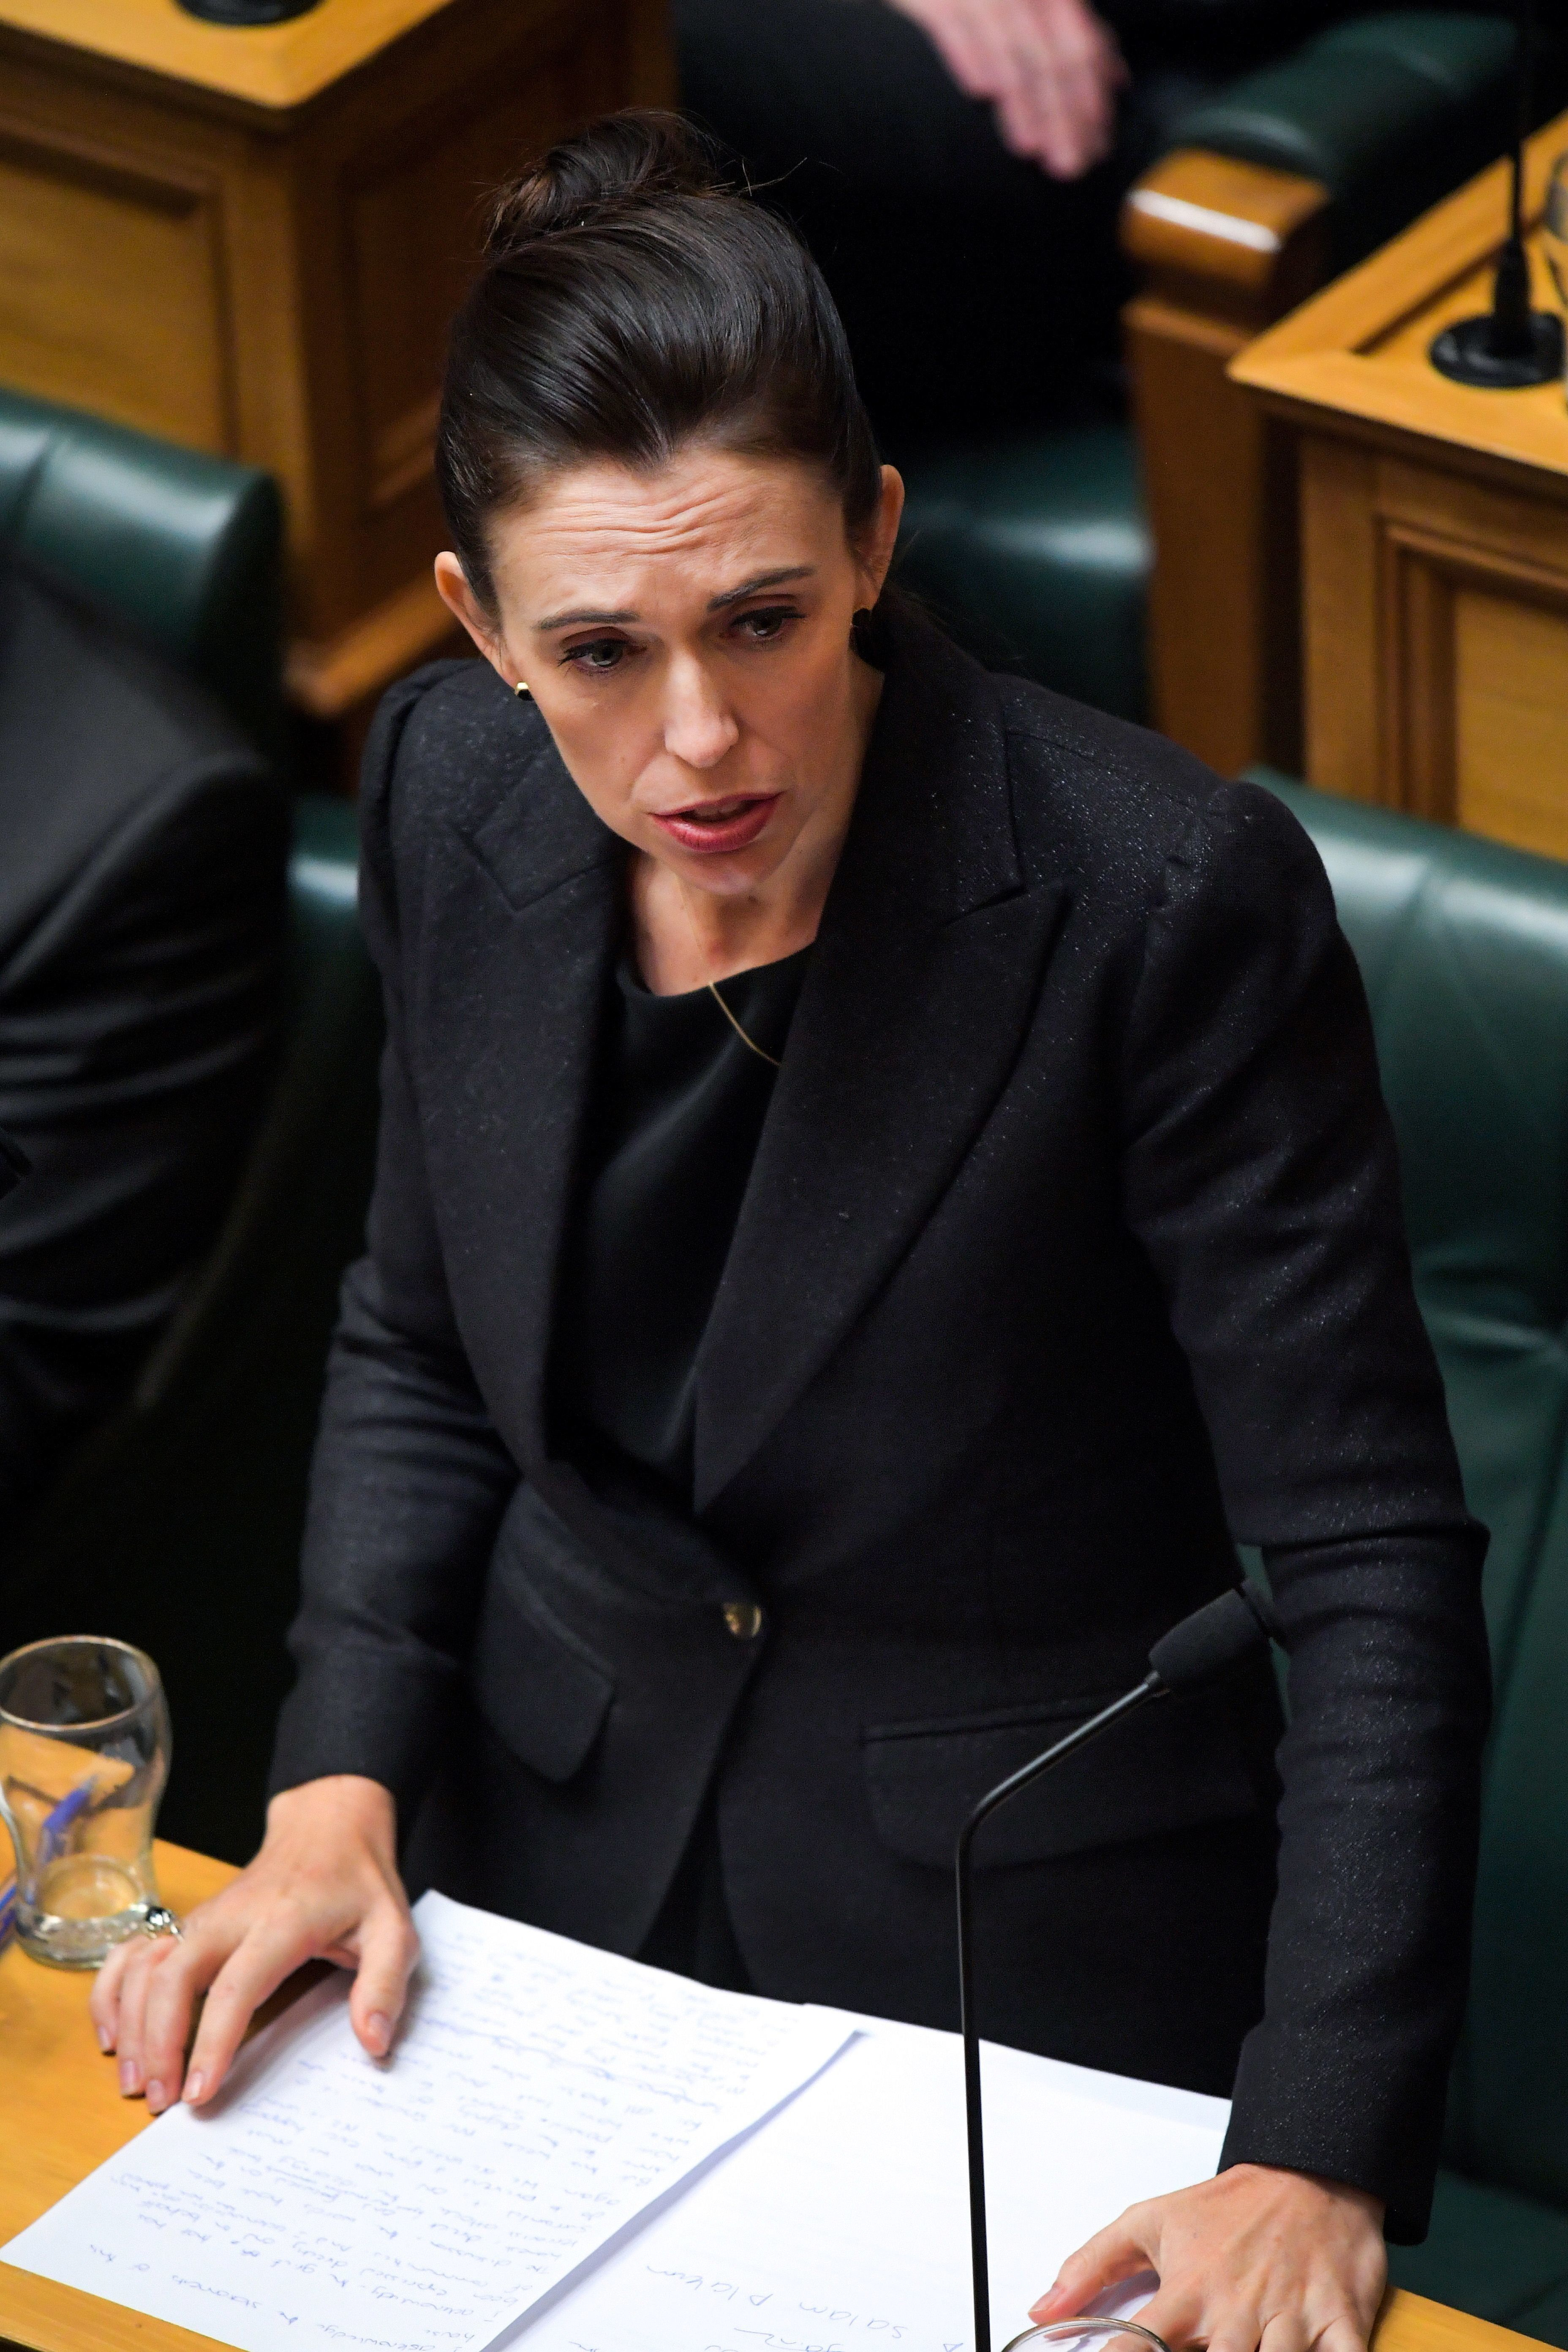 'New Zealand Will Give Him Nothing': Jacinda Ardern Refuses To Name Mosque